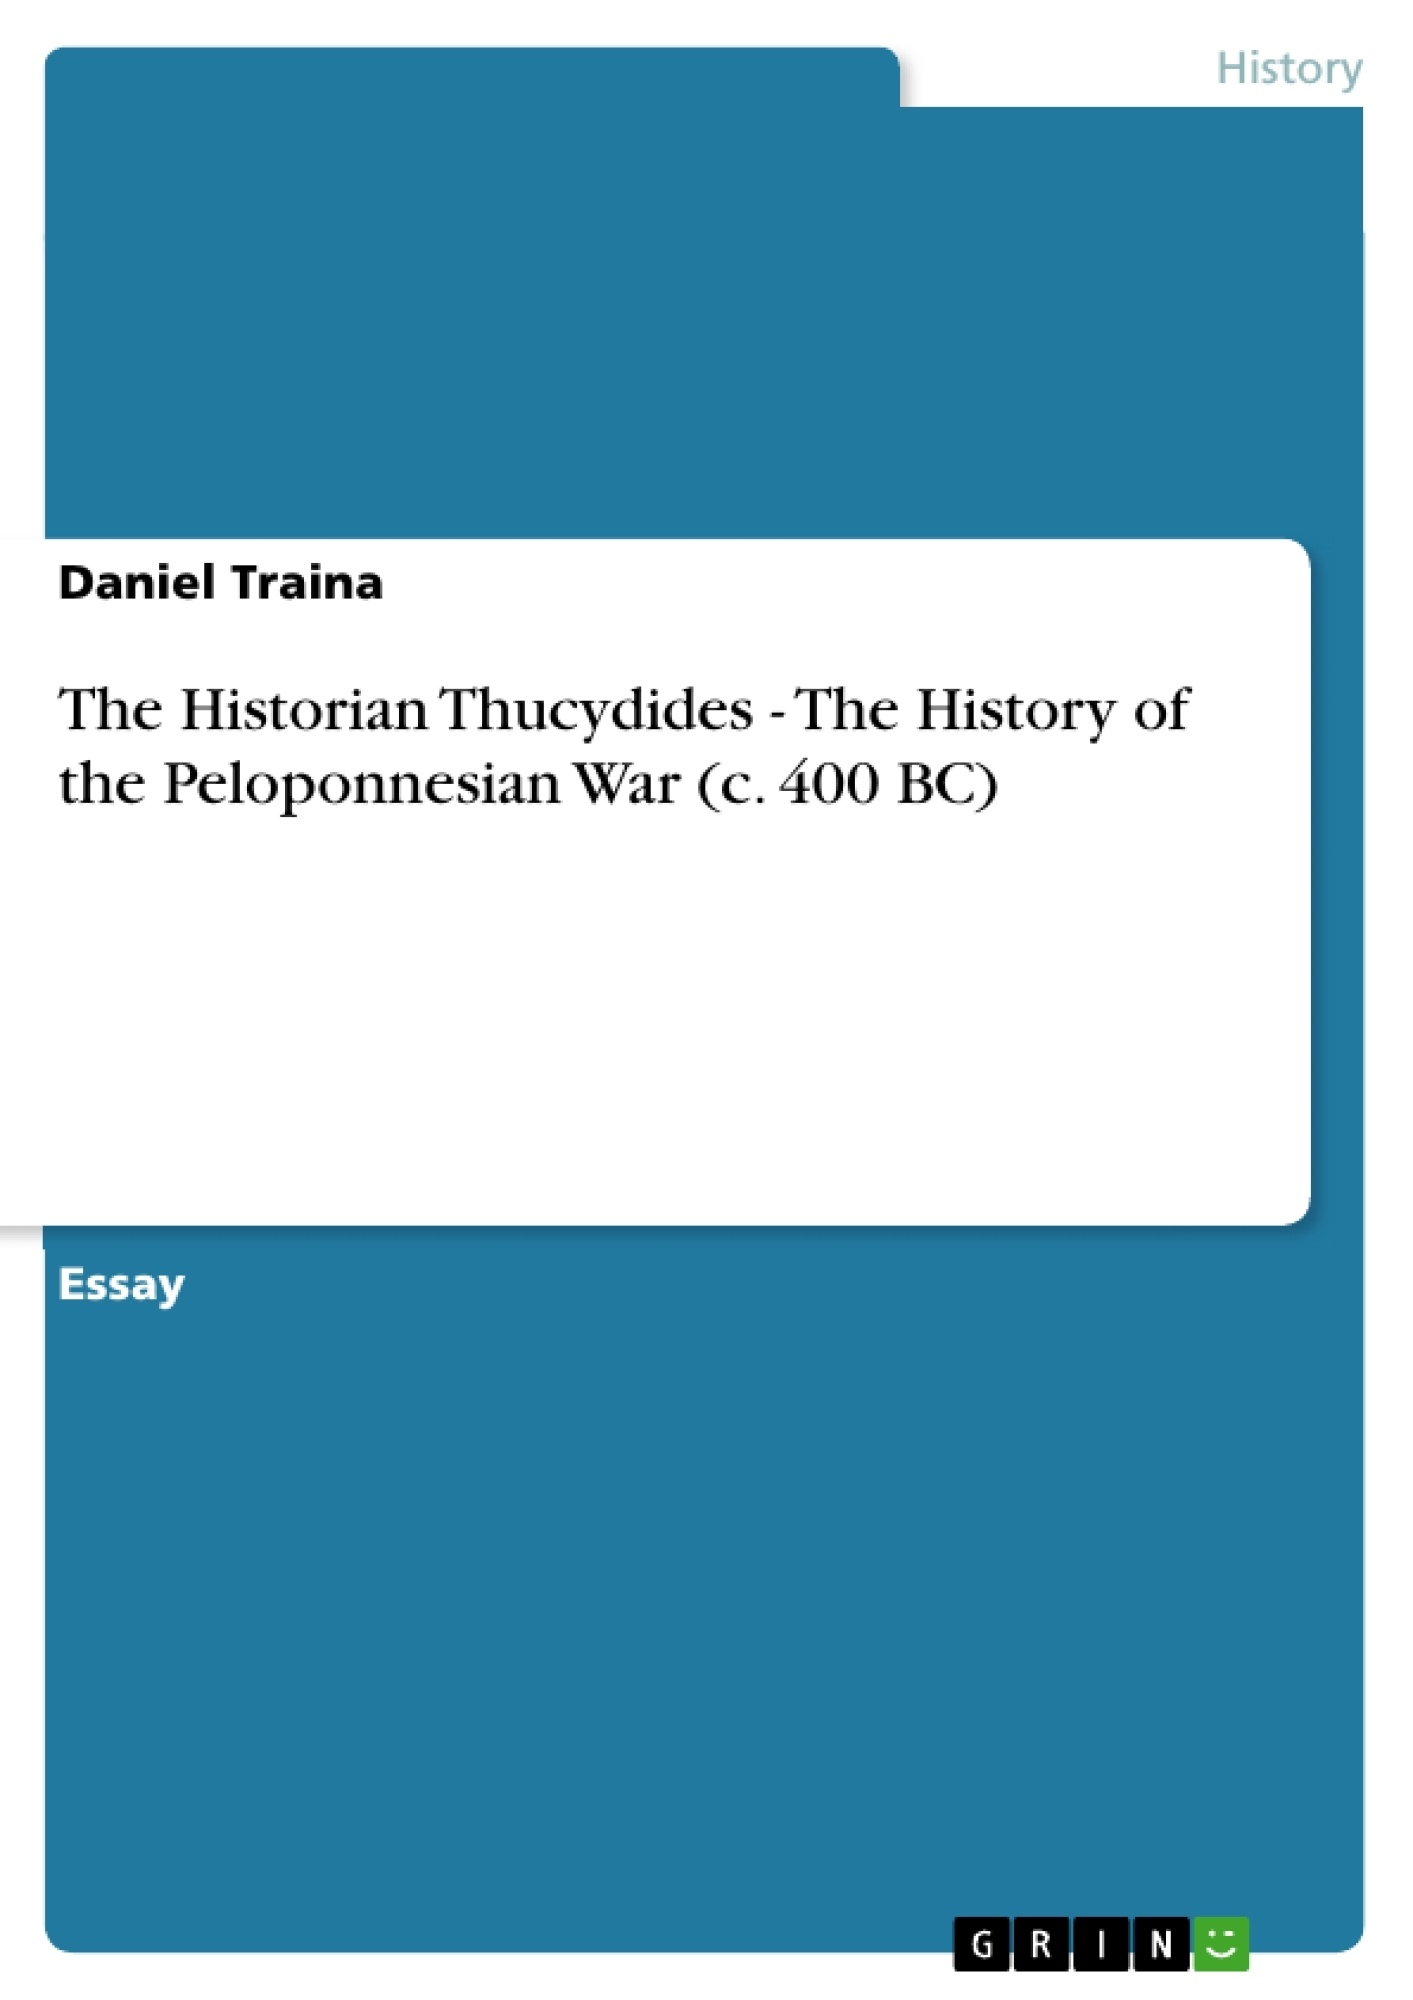 Title: The Historian Thucydides - The History of the Peloponnesian War (c. 400 BC)